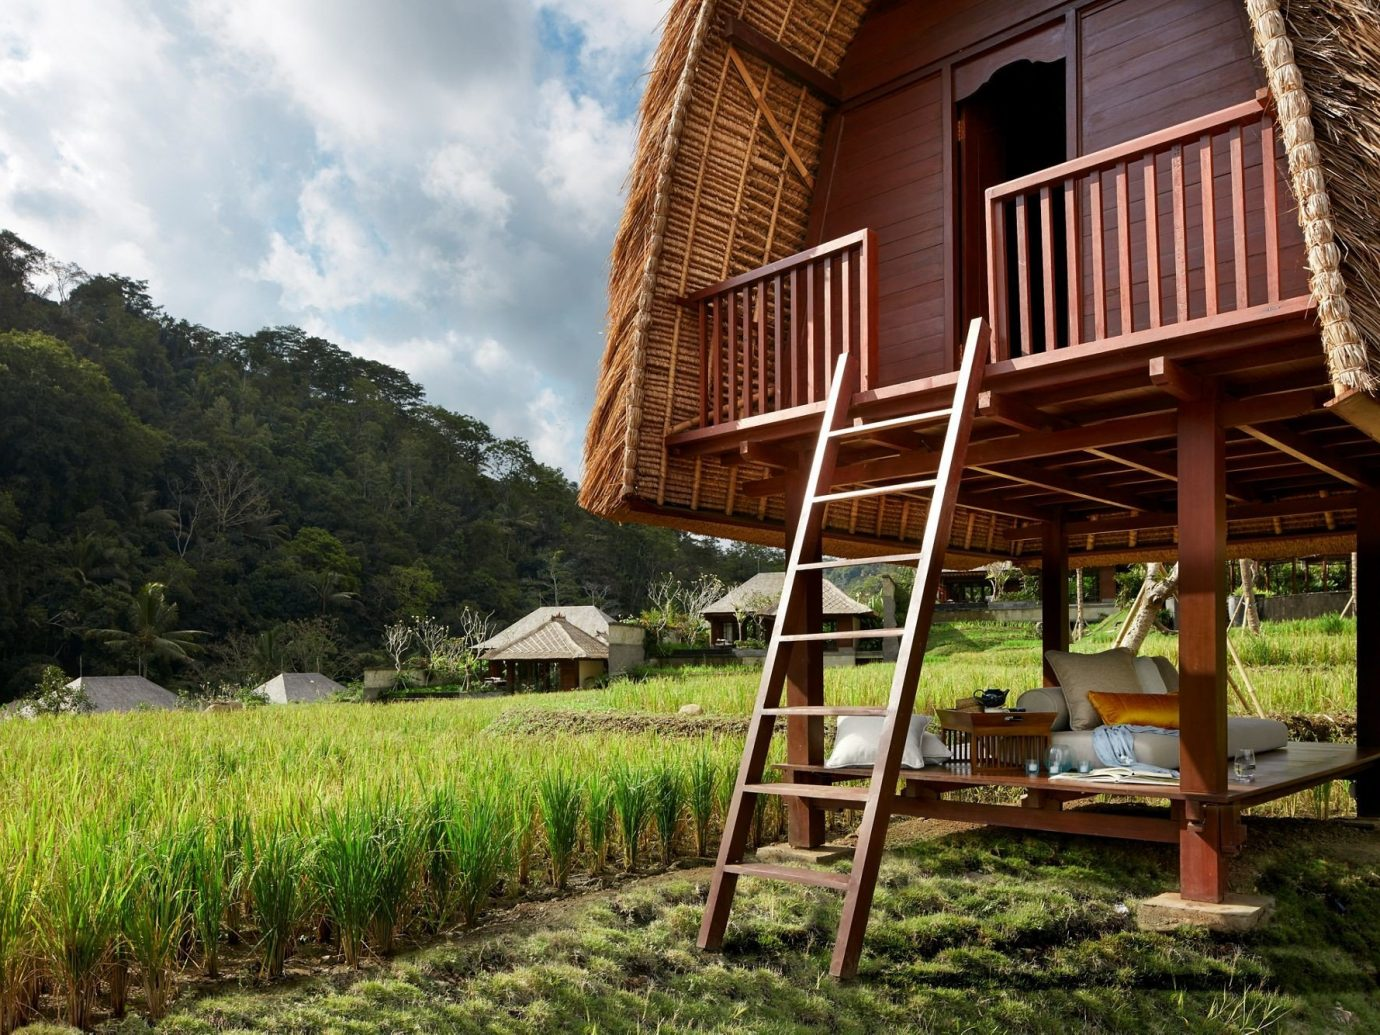 Health + Wellness Hotels grass outdoor sky house agriculture rural area lawn hut cottage outdoor structure